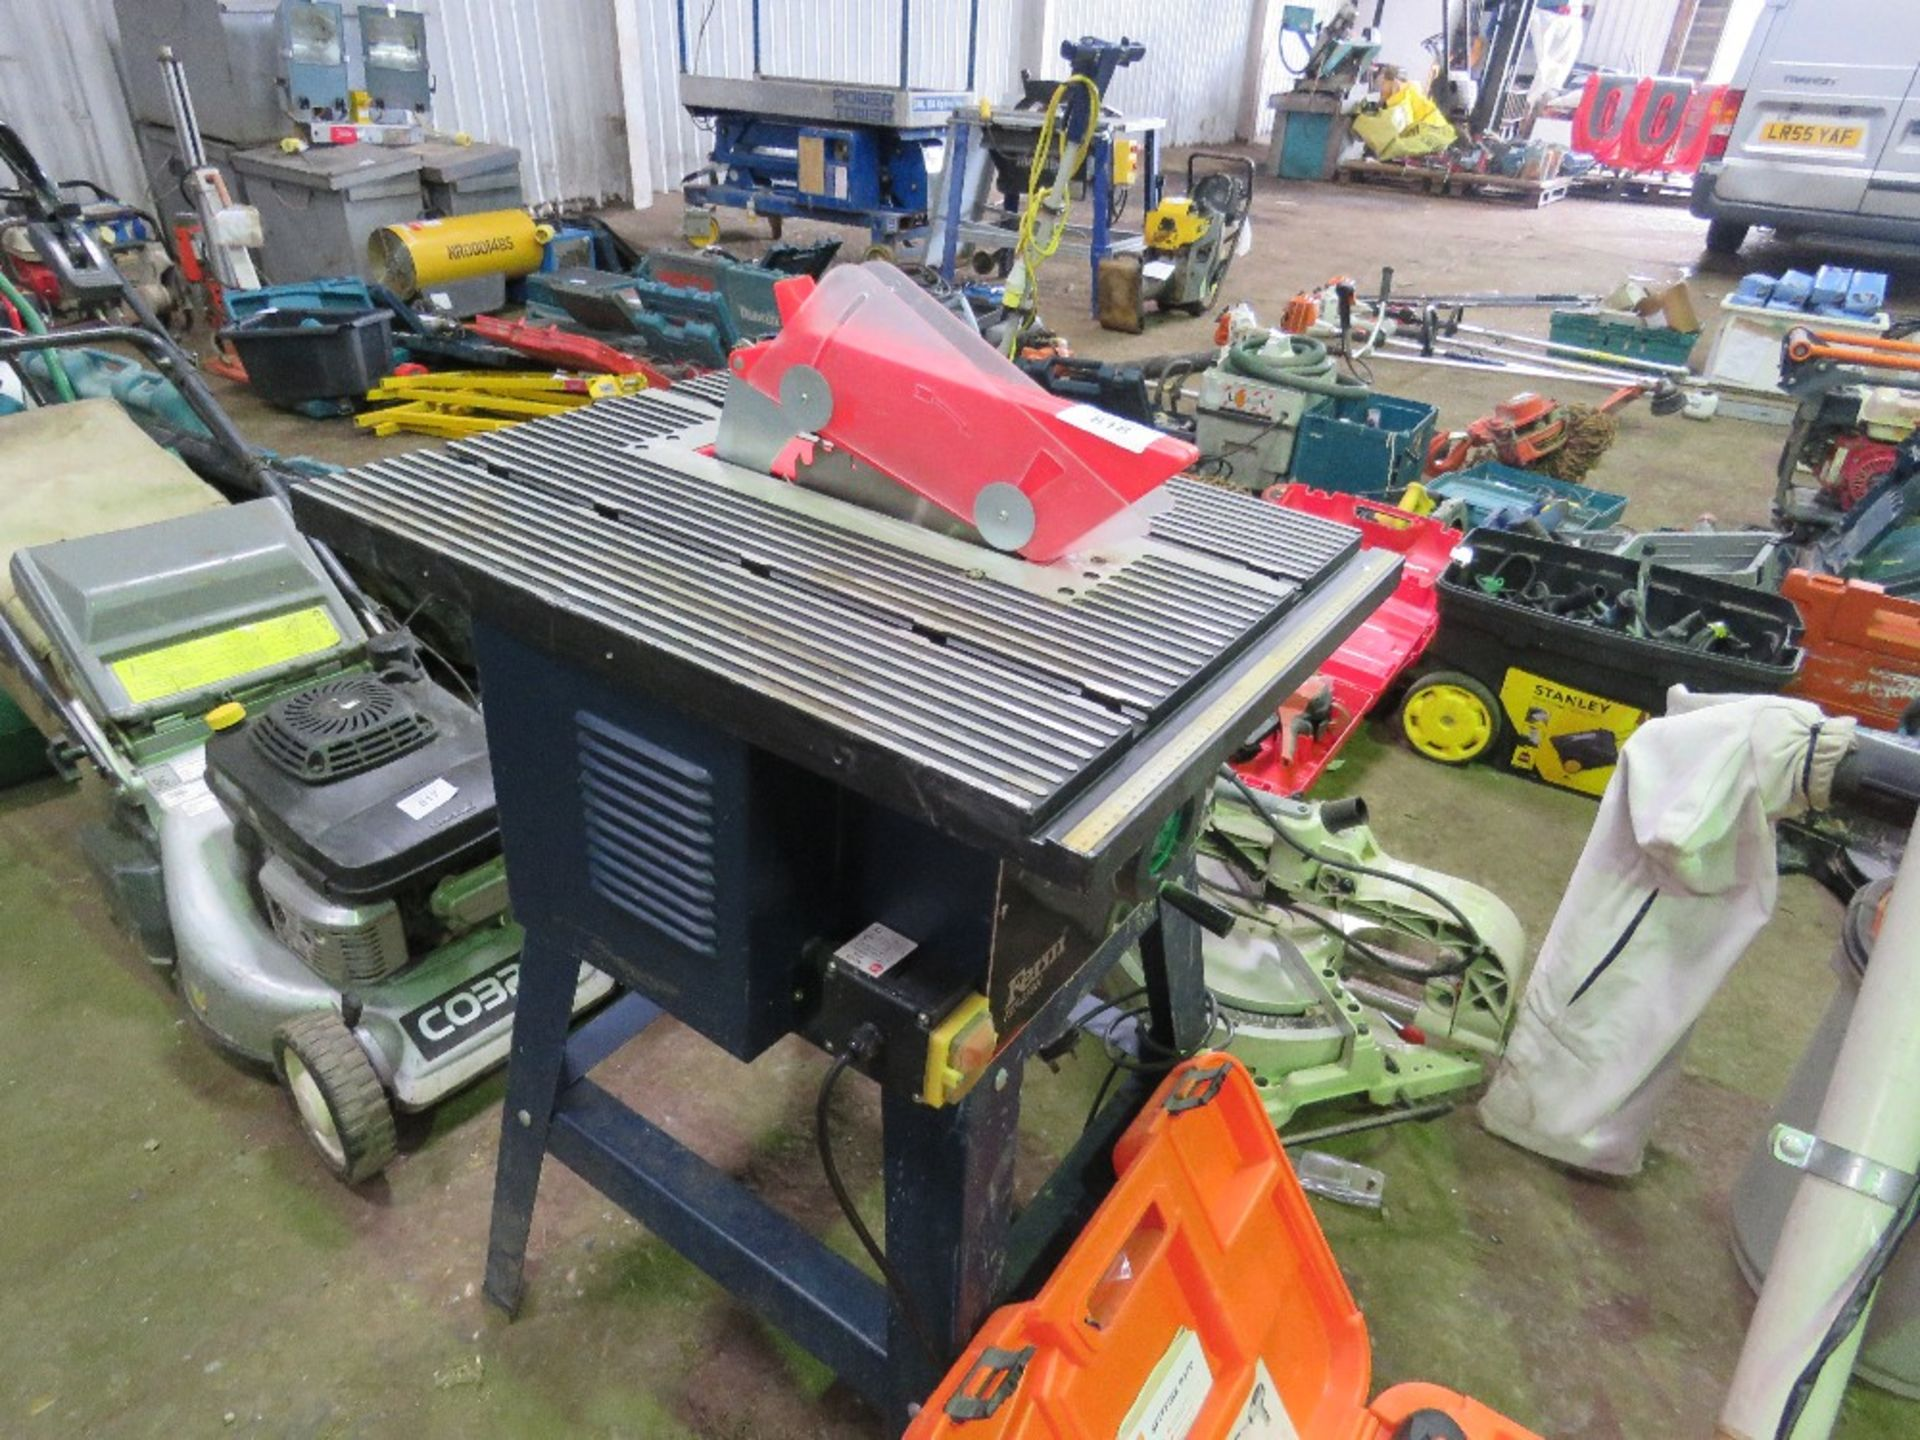 Lot 818 - FERM SMALL SIZED HOBBY SAWBENCH, 240 VOLT.